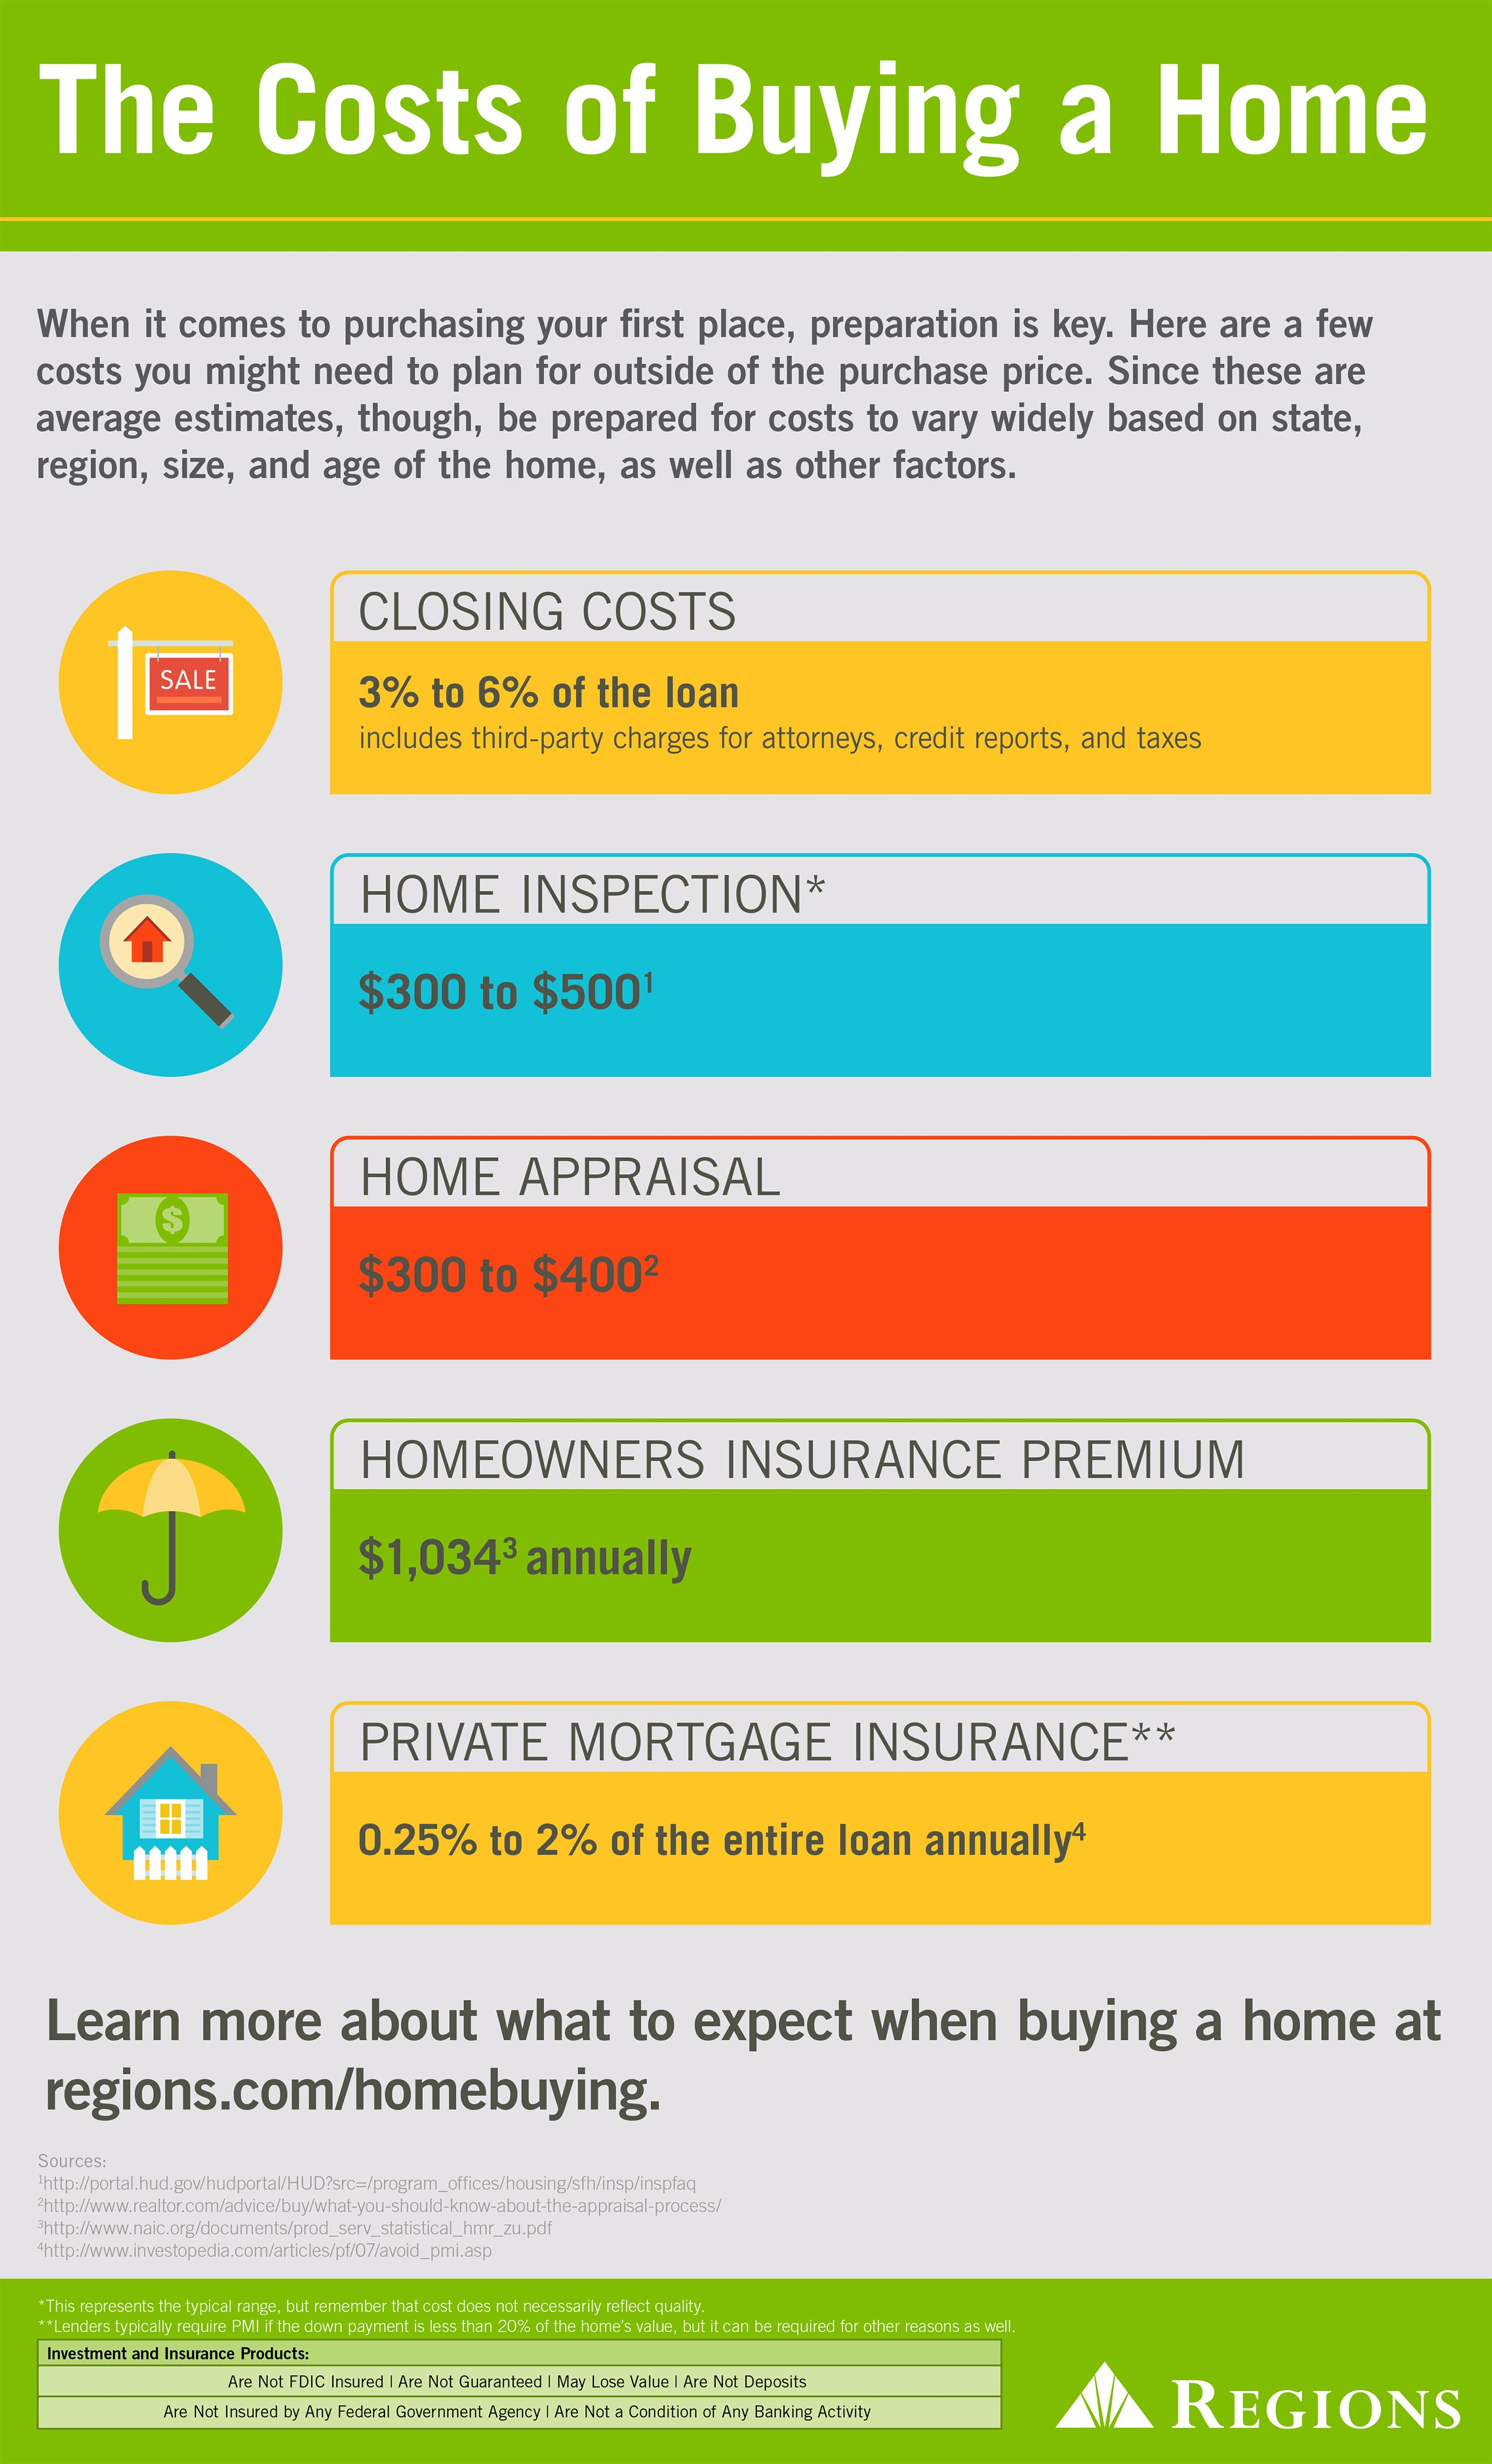 Cost of Buying a Home Infographic